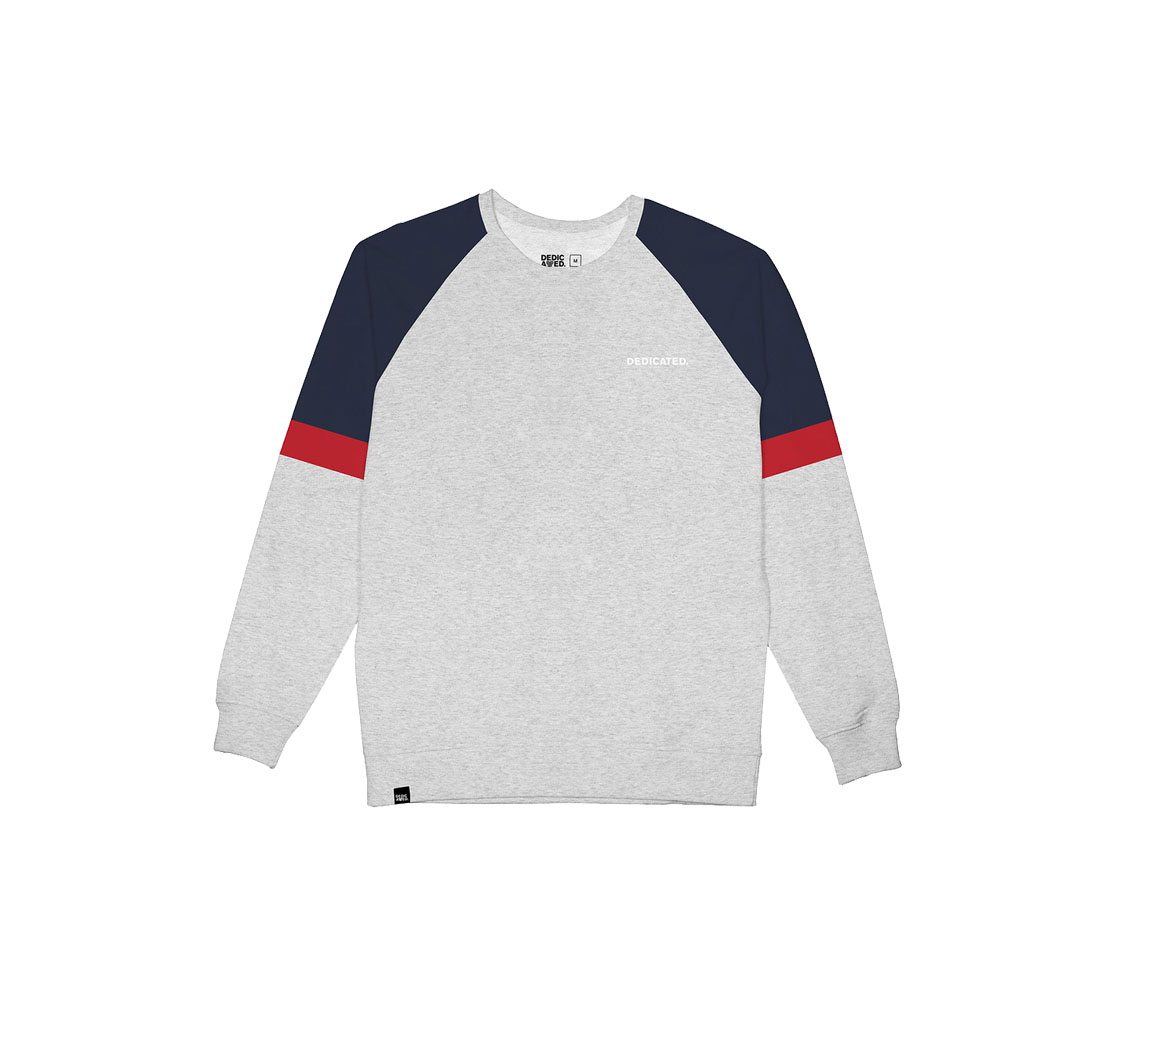 Sweat en coton  organique  Malmoe Sweatshirt